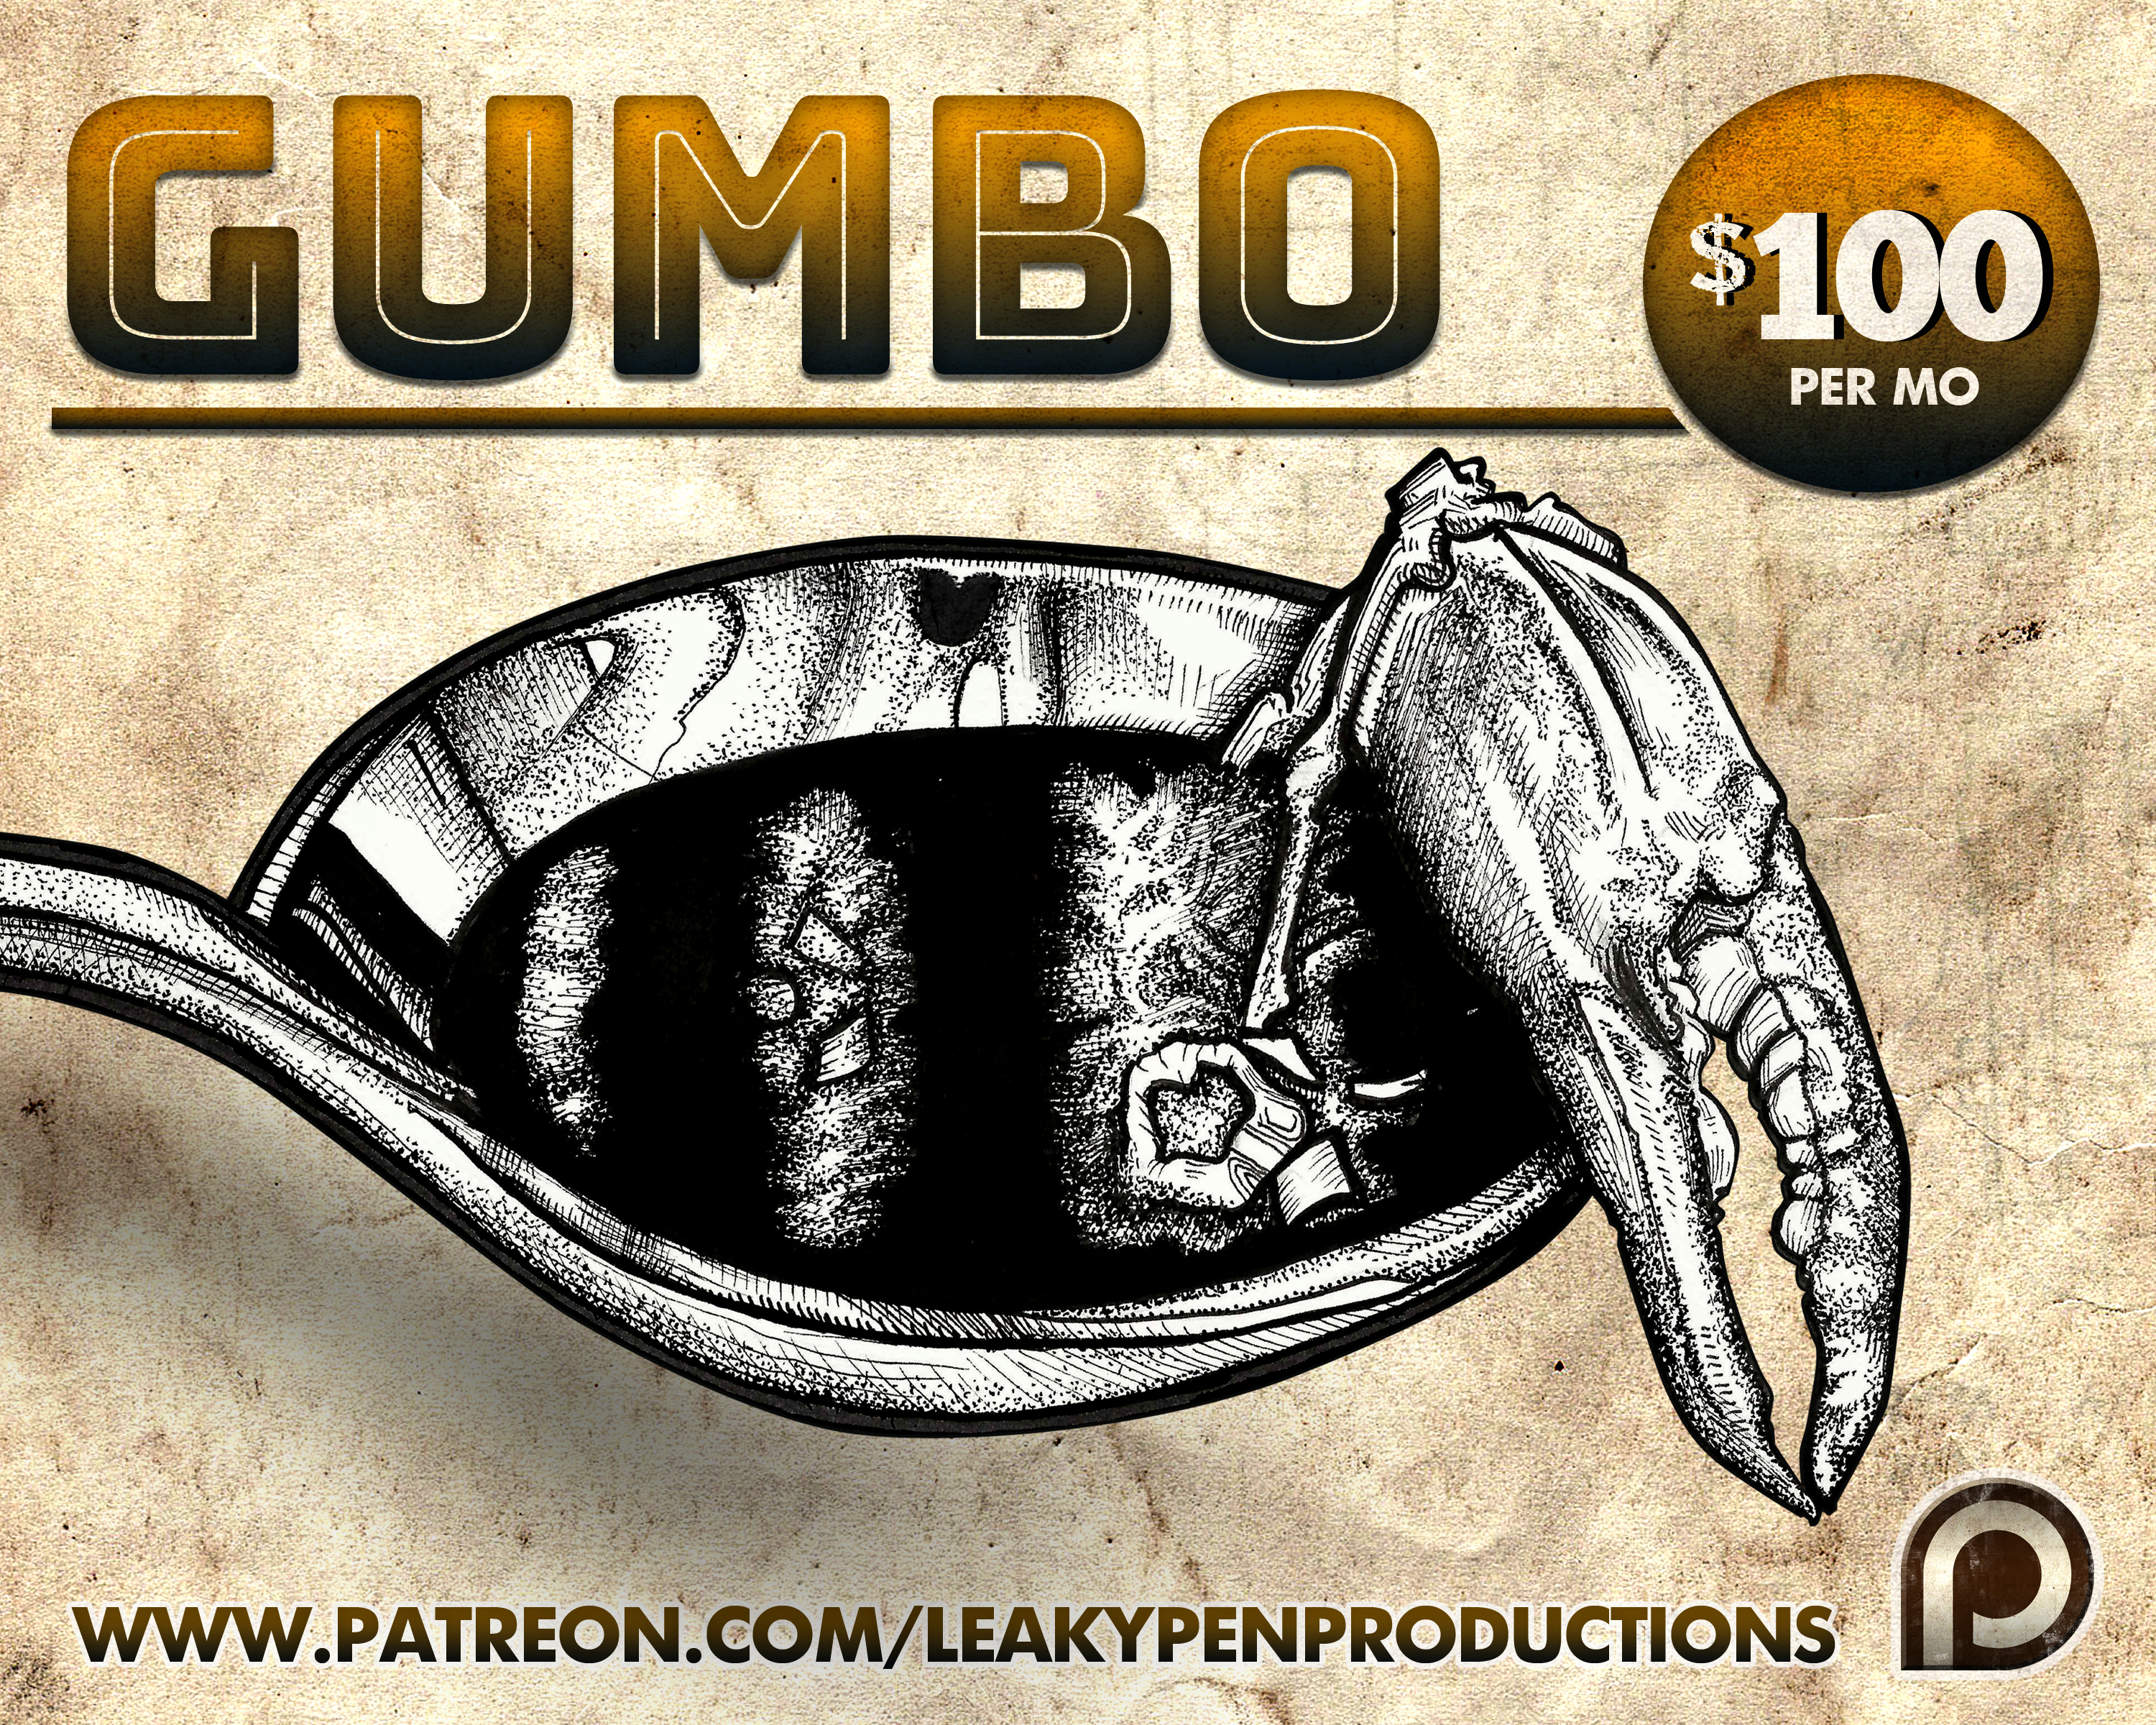 Gumbo rewards